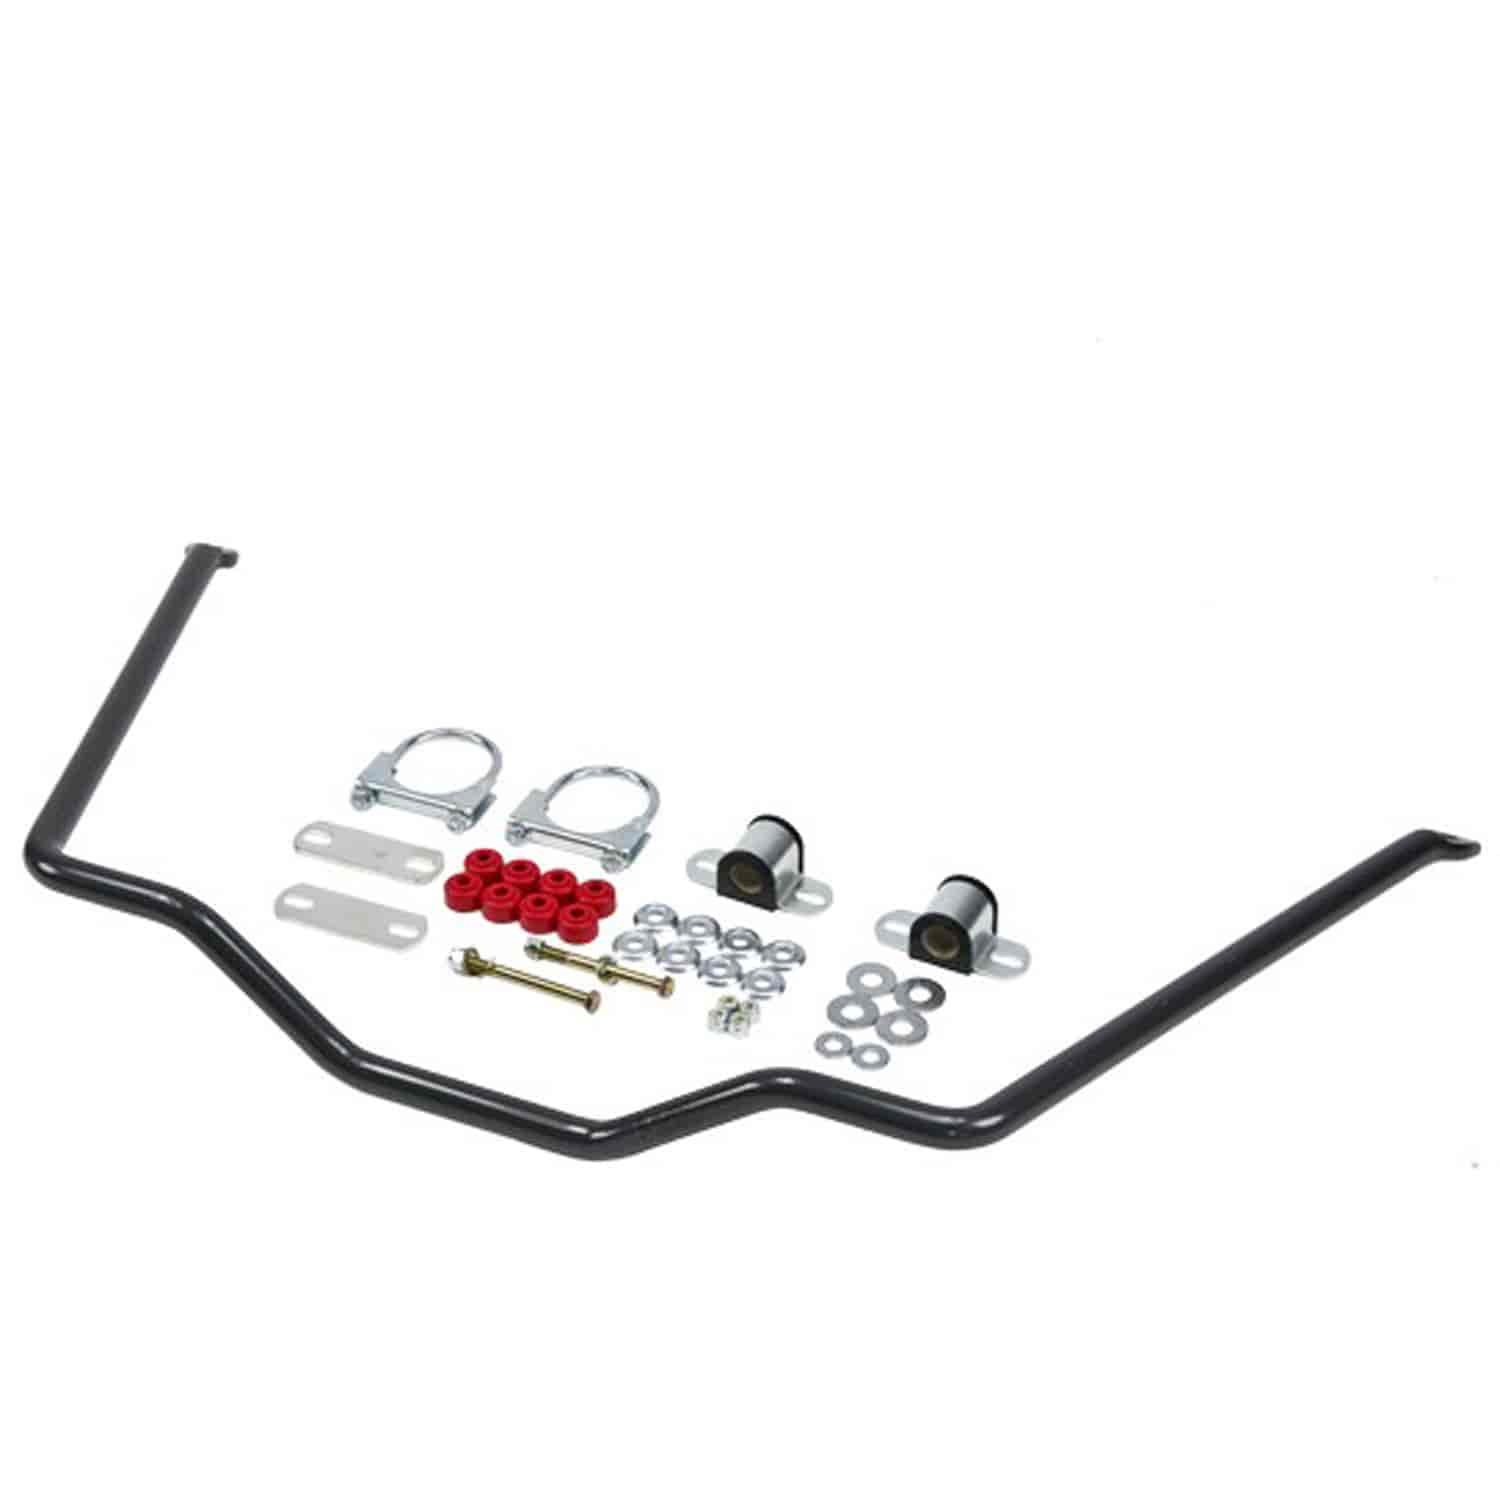 Belltech Rear Sway Bar Kit For Chevy S10